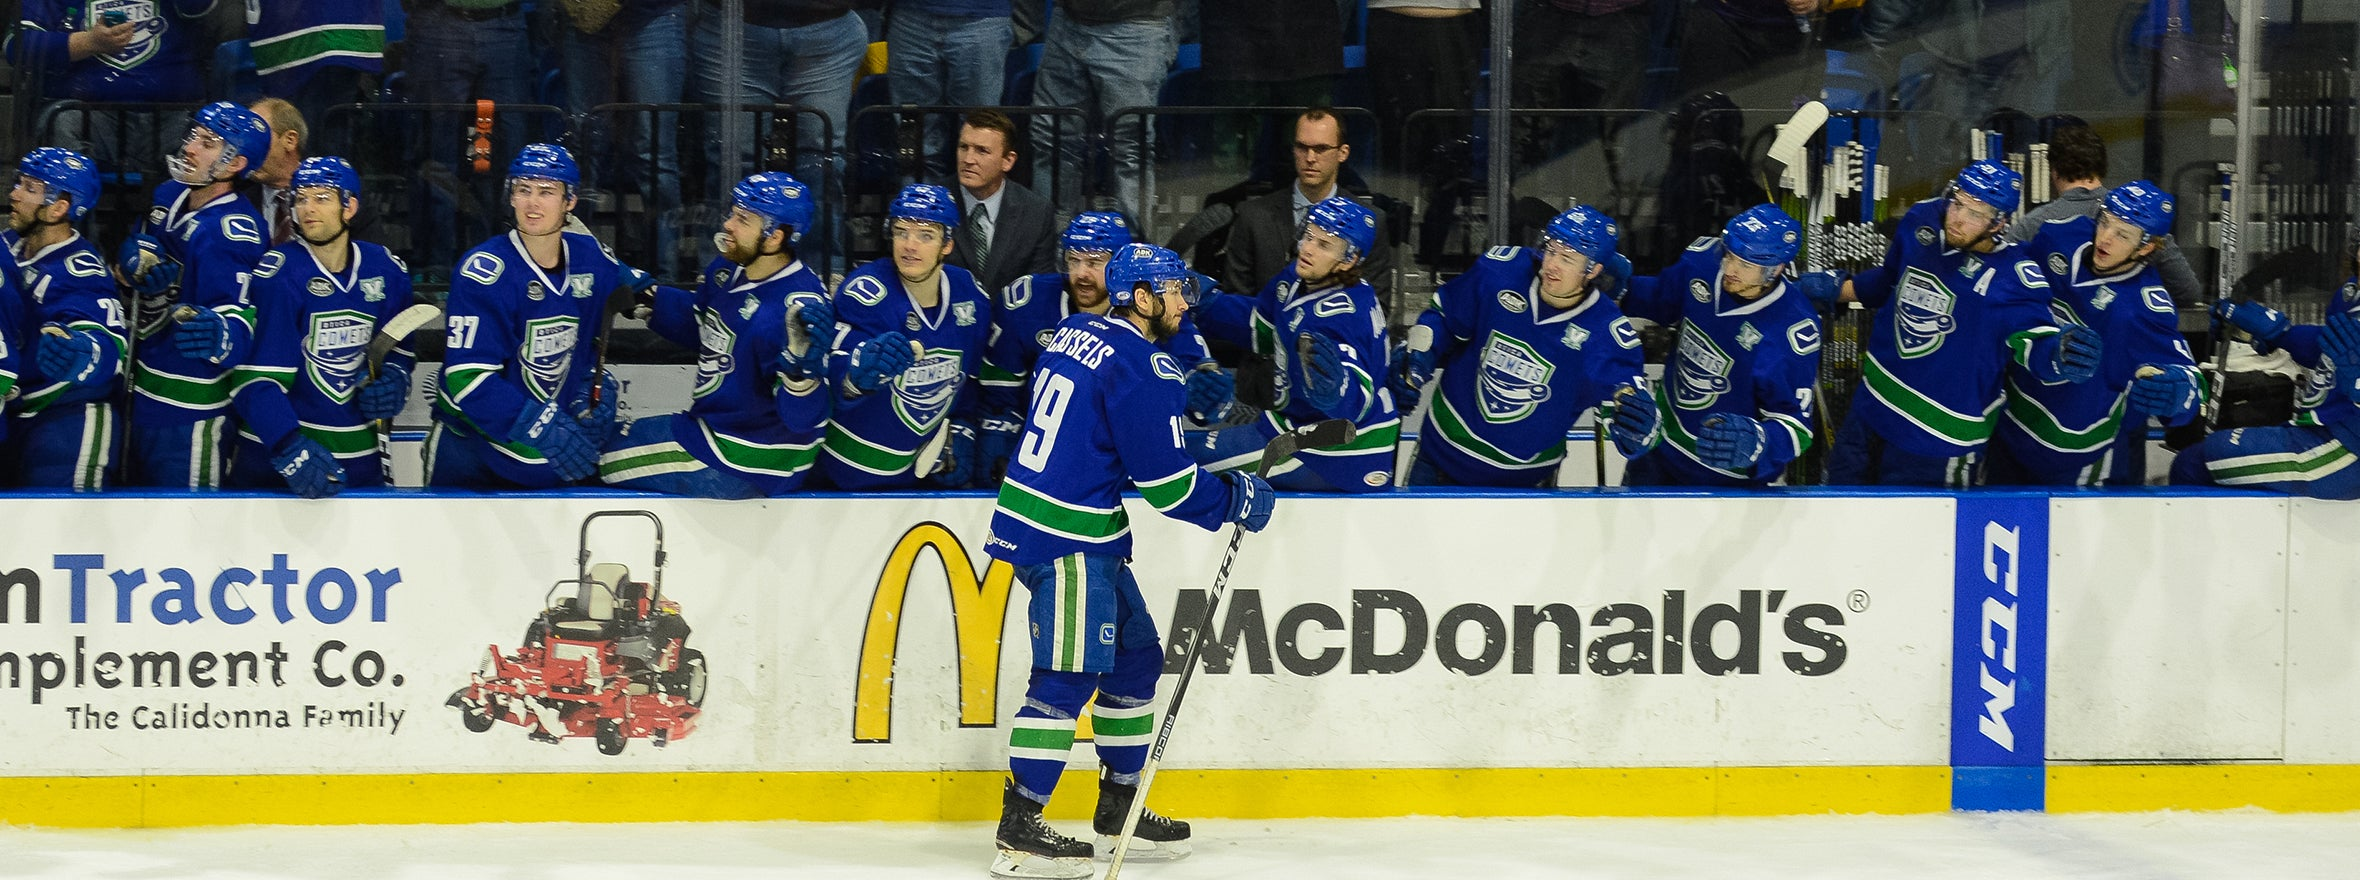 COMETS RALLY TO BEAT MARLIES IN SHOOTOUT